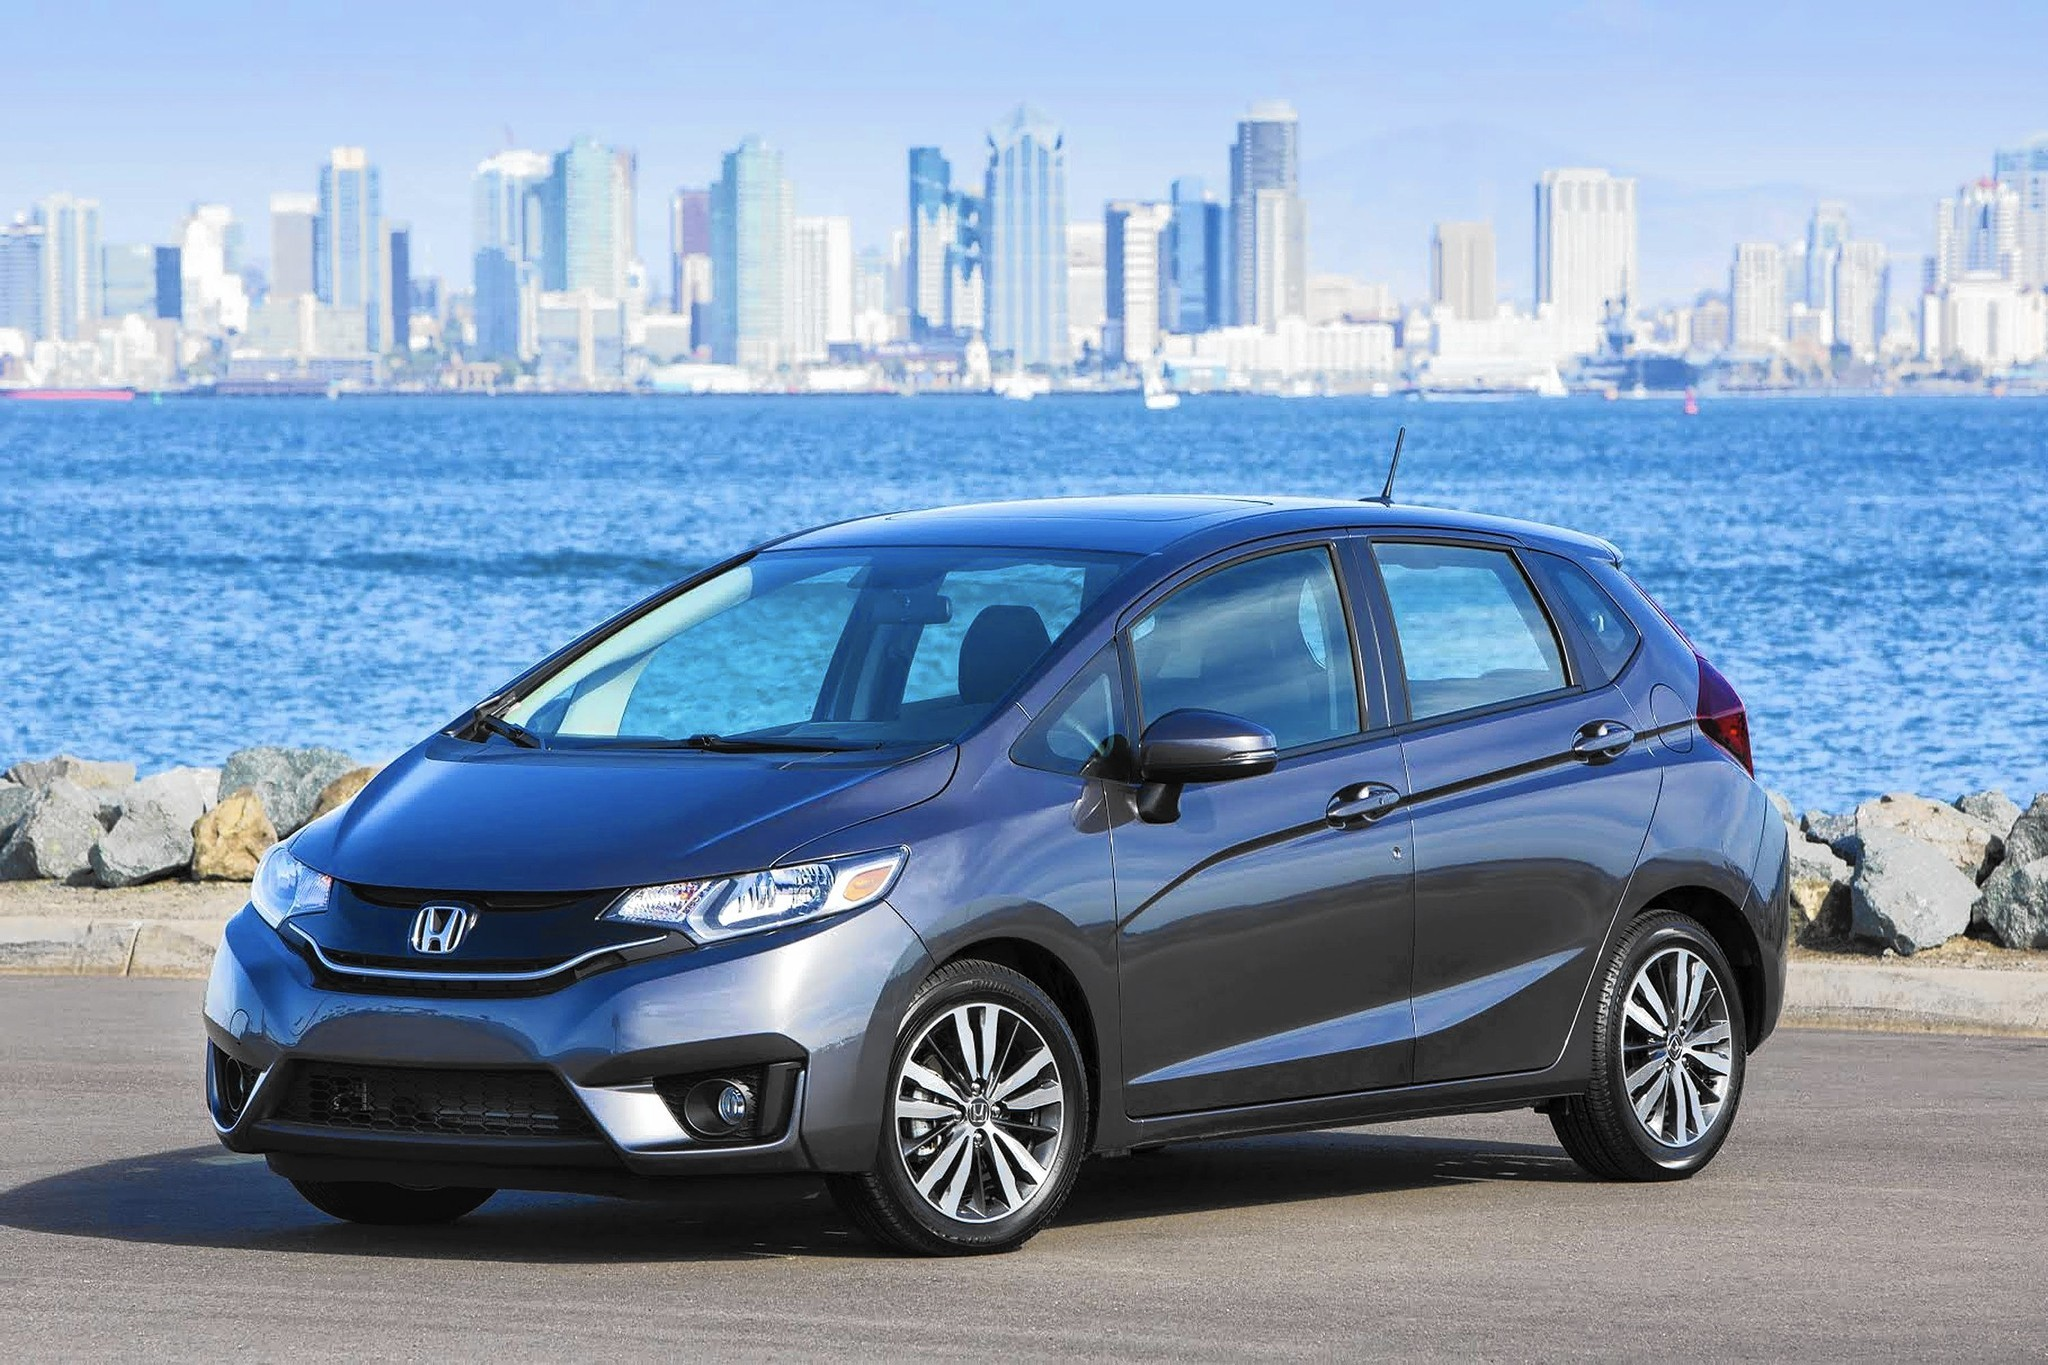 Best family cars of 2015 according to parents and edmunds chicago tribune